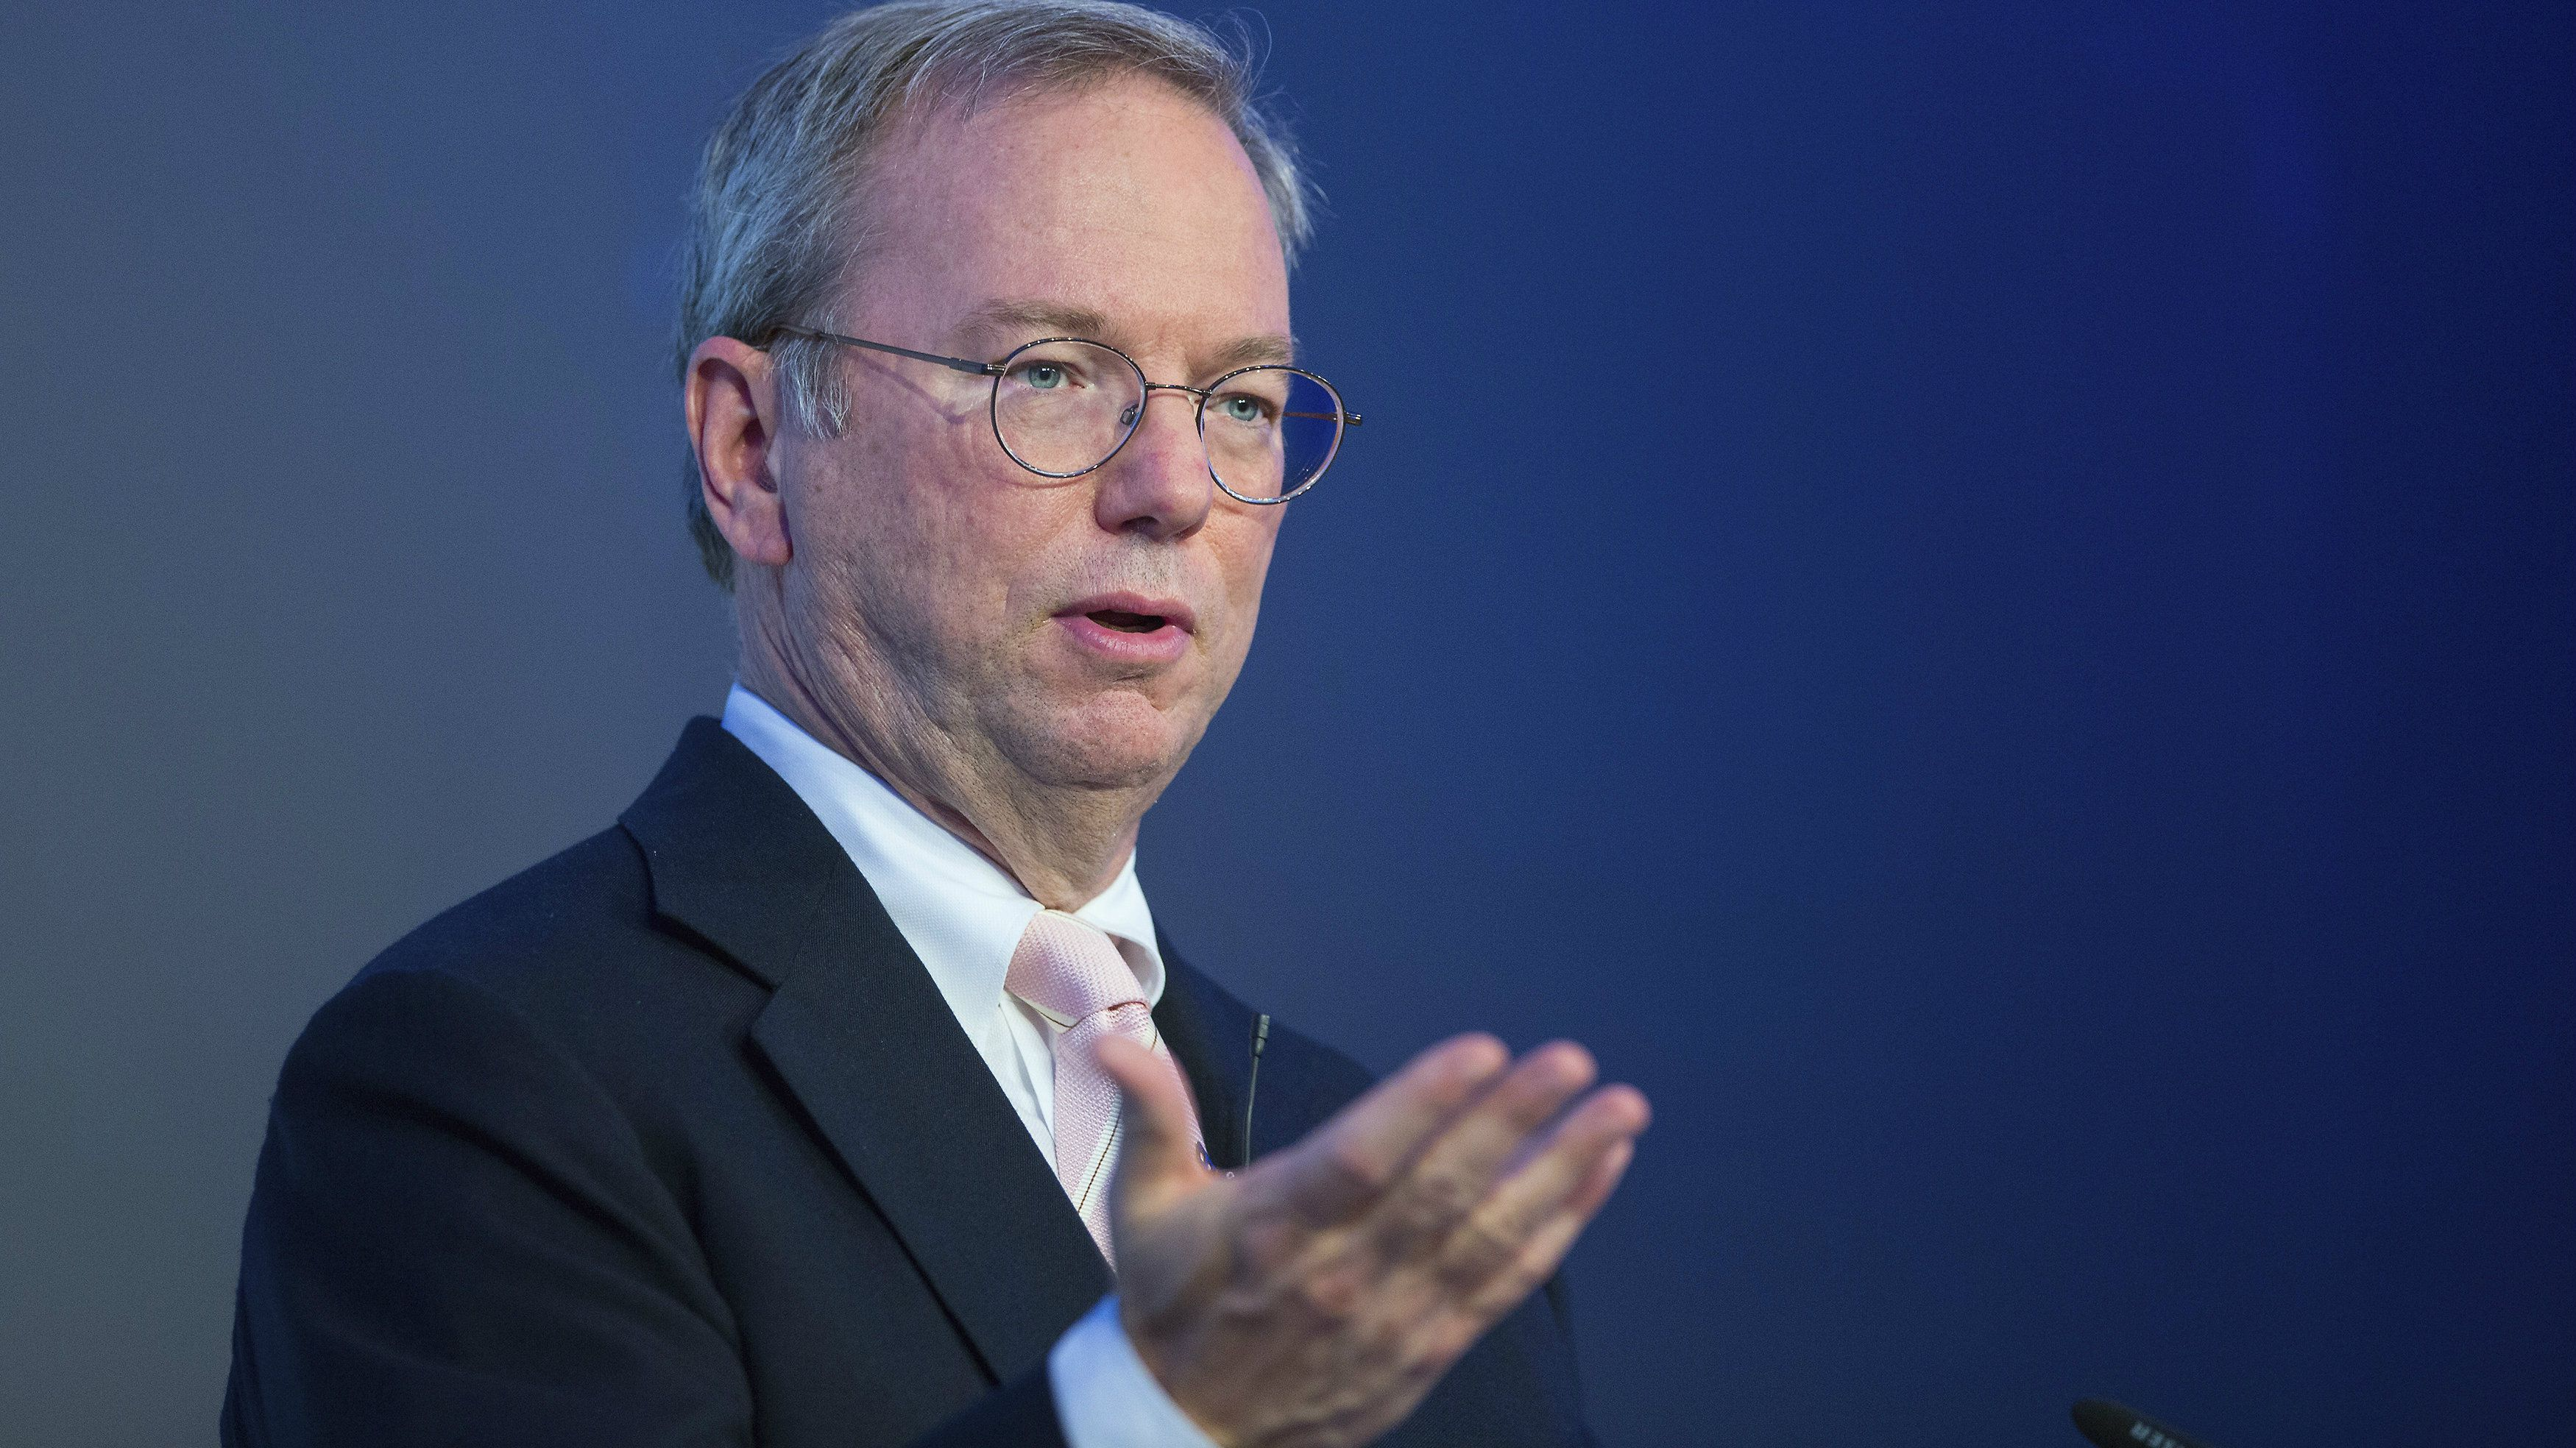 Google Executive Chairman Eric Schmidt holds a speech before a panel discussion in Berlin October 14, 2014. REUTERS/Hannibal (GERMANY - Tags: POLITICS BUSINESS)